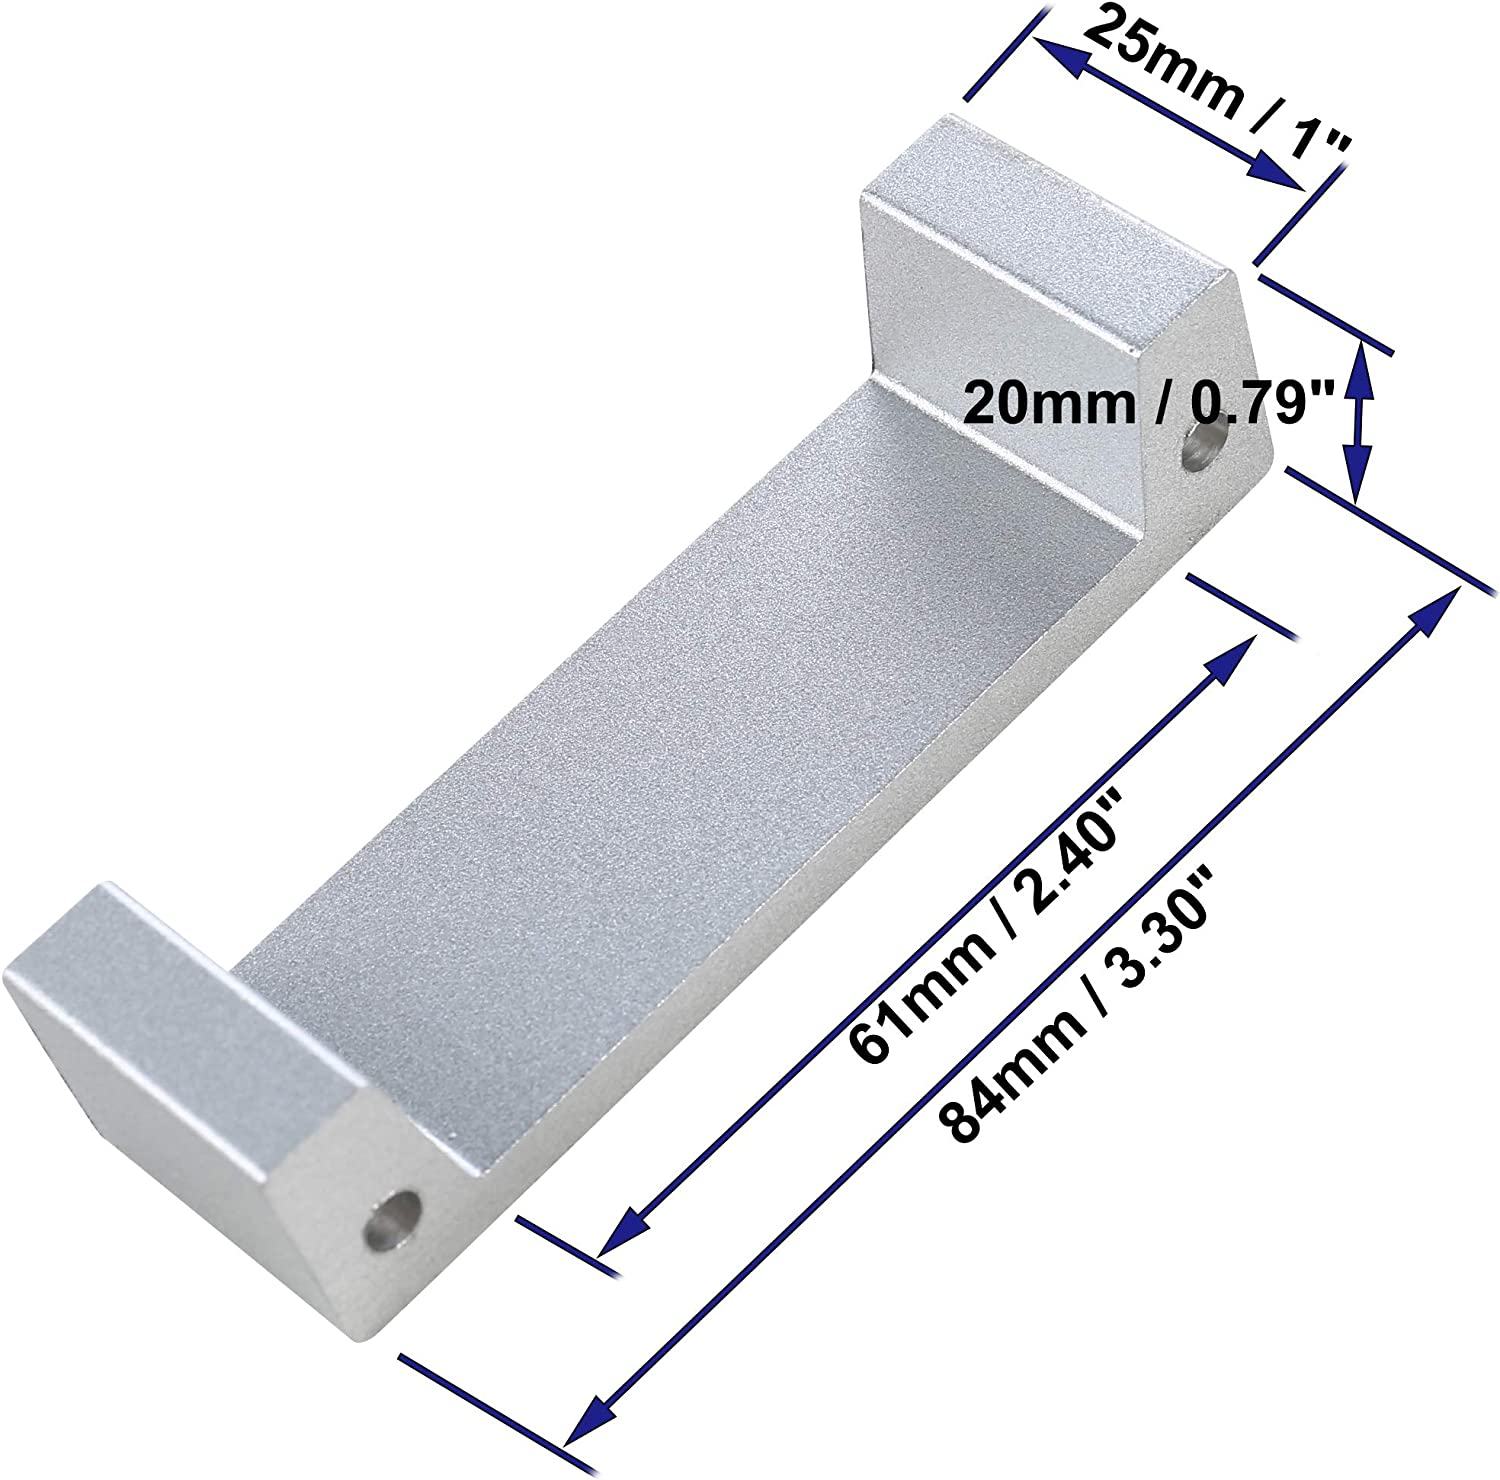 Extension Plate For Electric Strike Lock Access Control System 25mm /1in - -